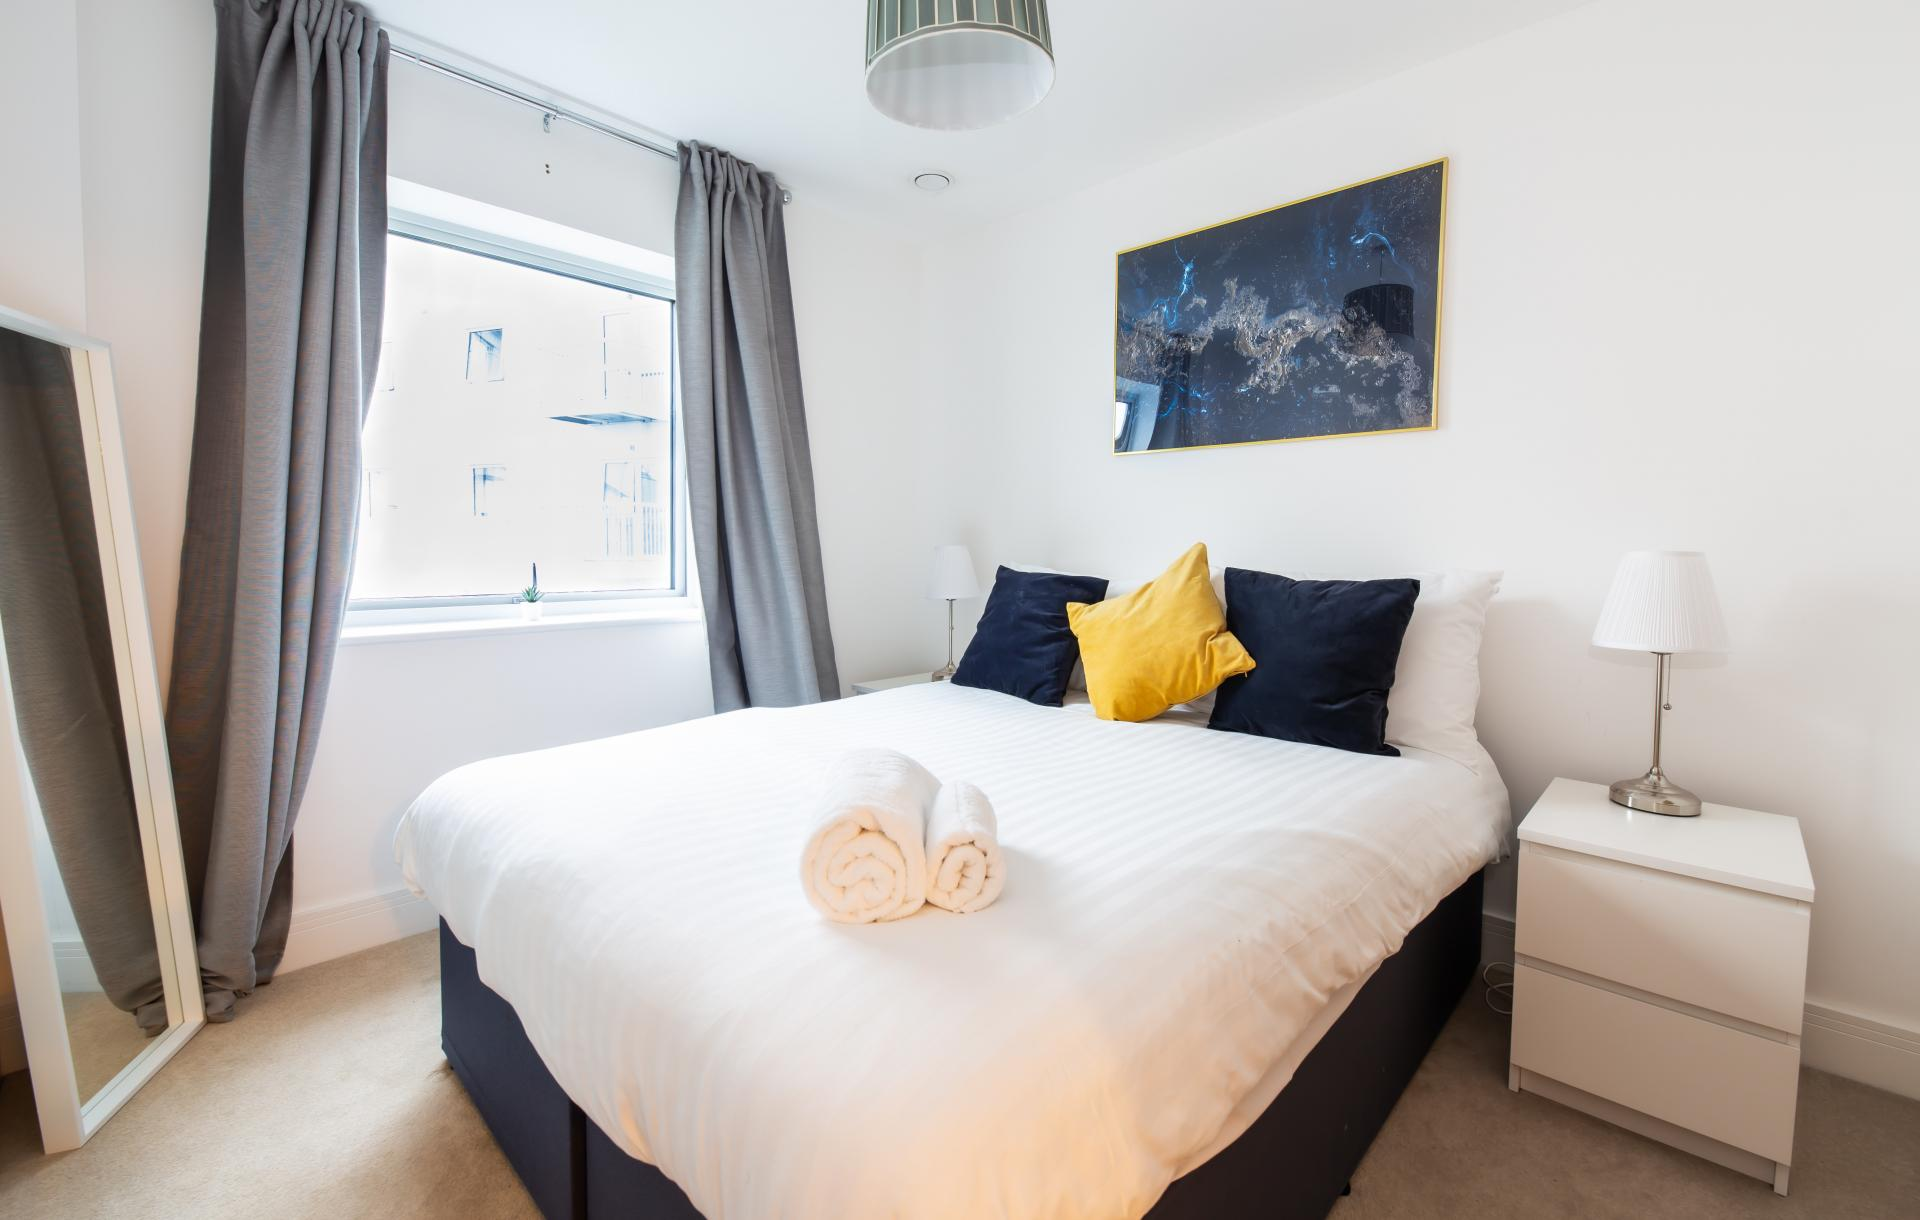 King size bed at Austen House, Centre, Guildford - Citybase Apartments